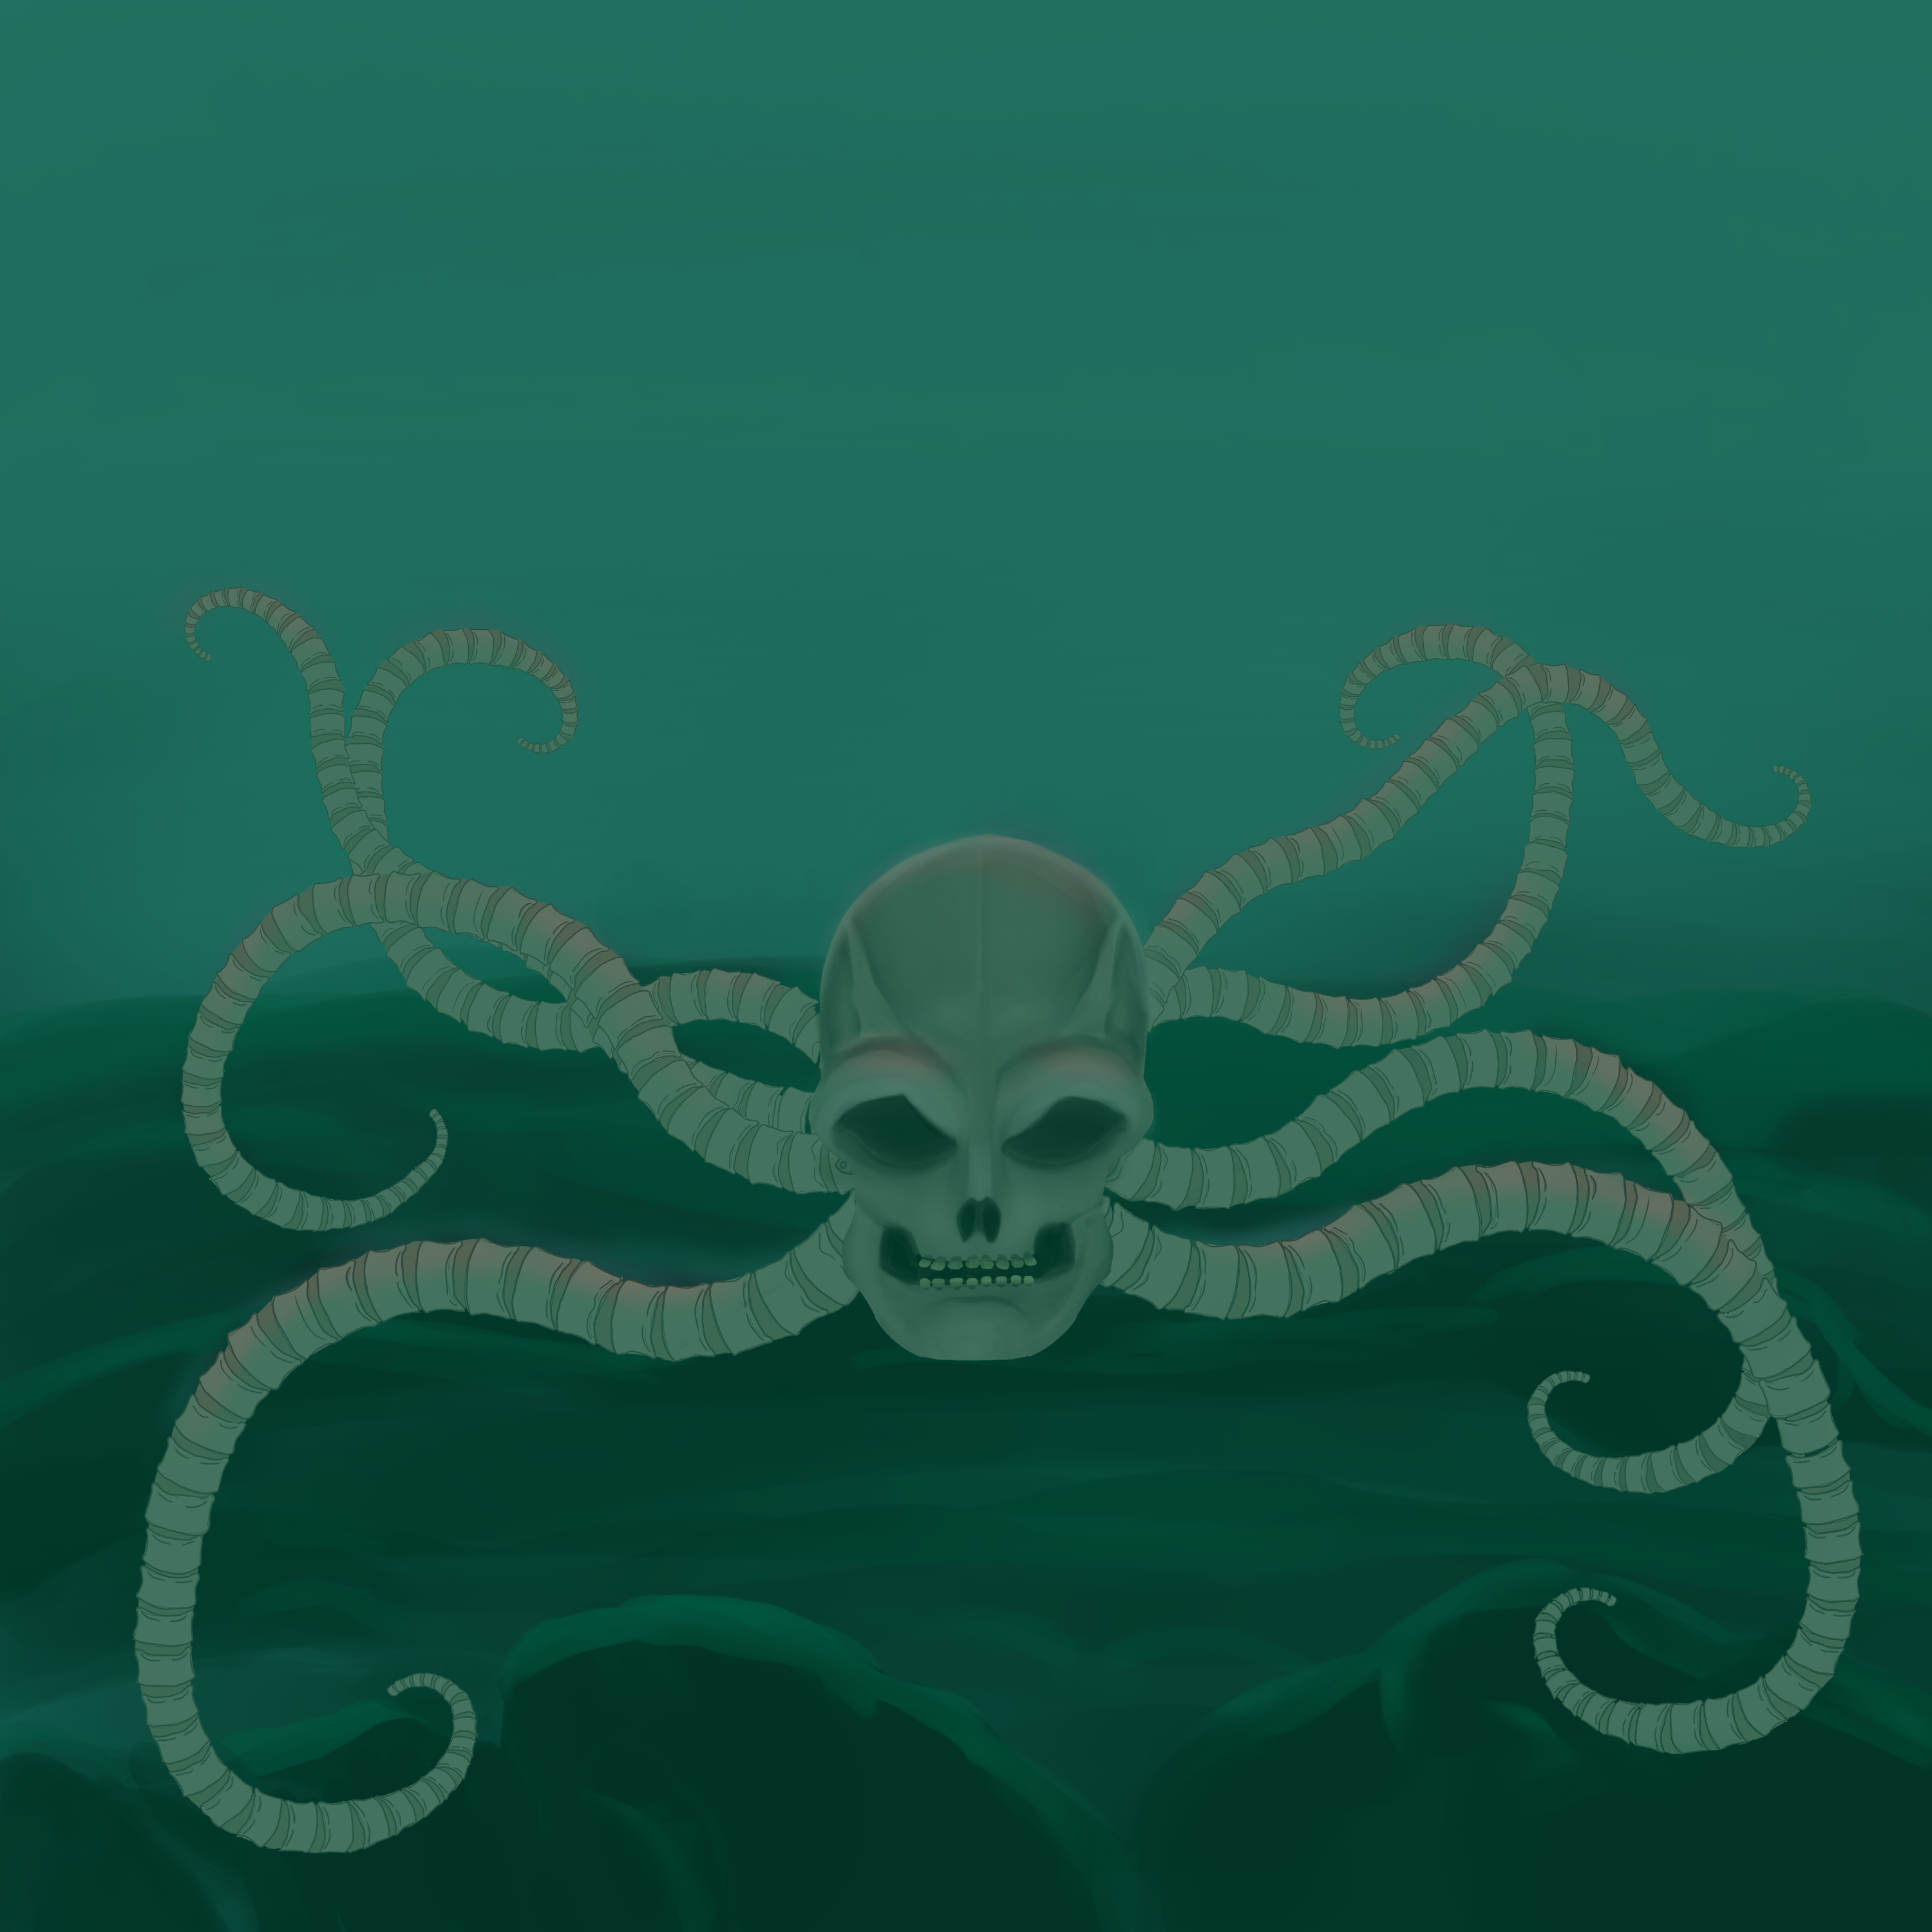 Octoskull is coming for you